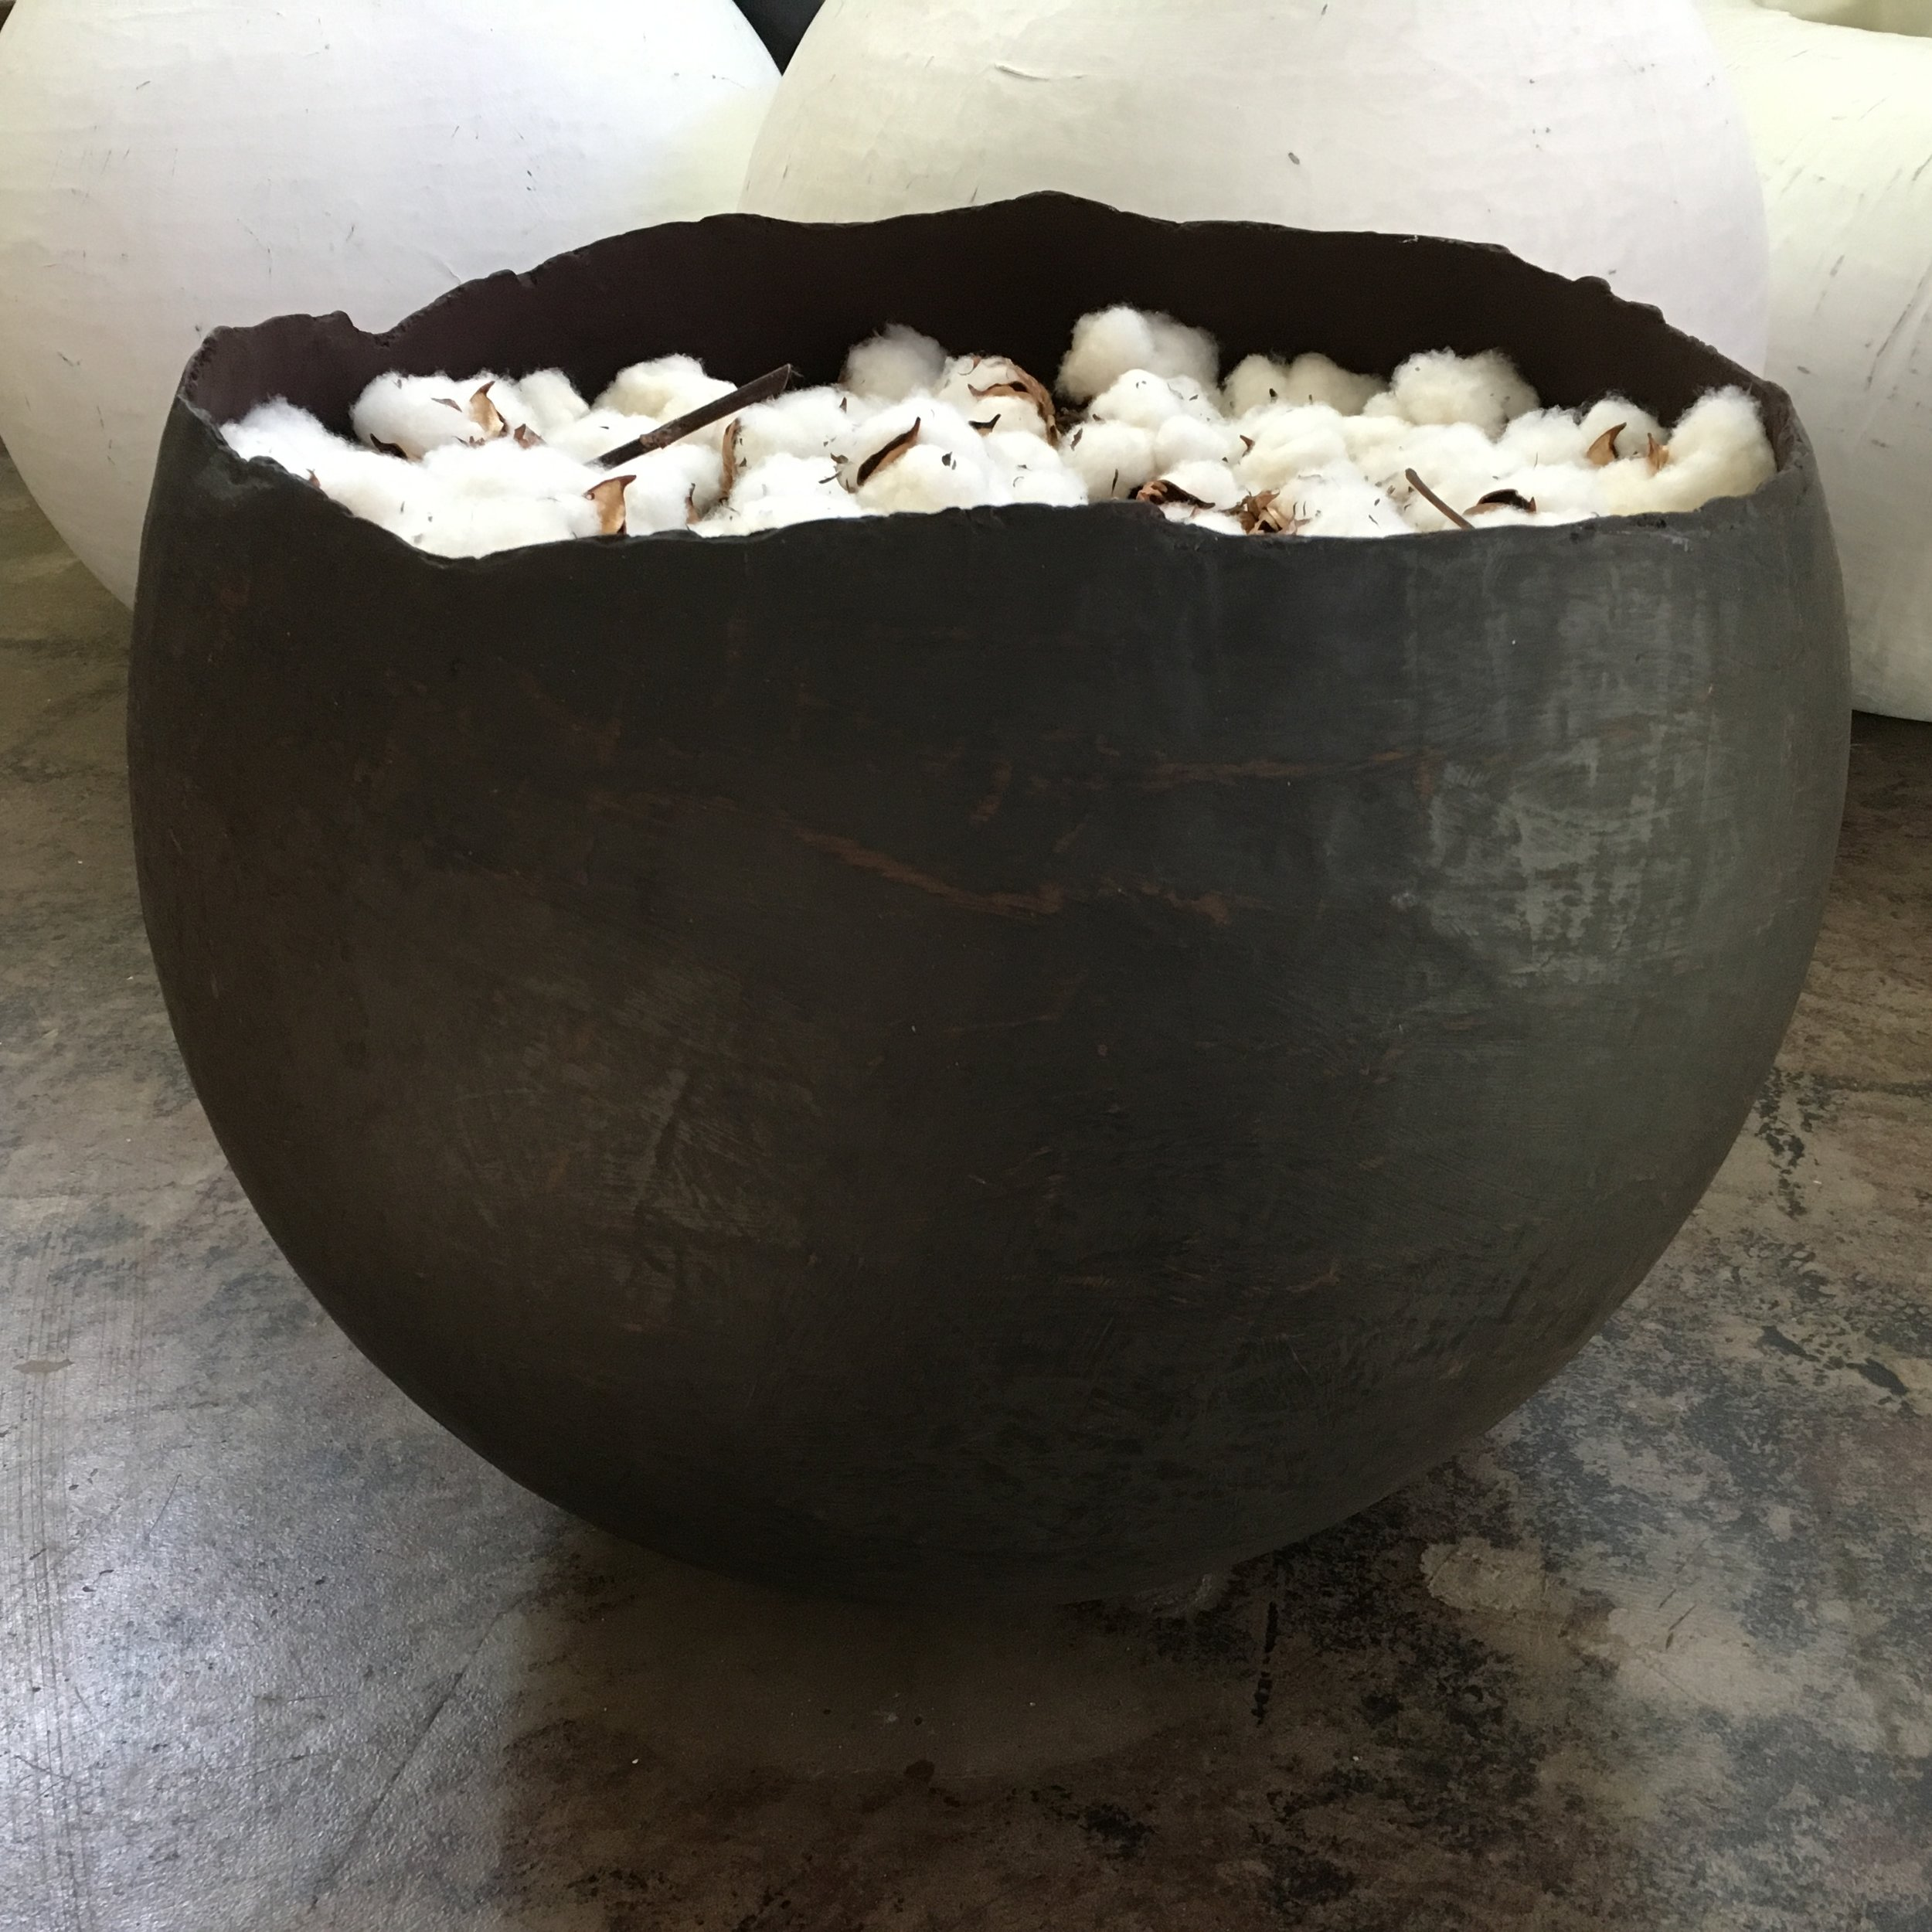 Large Black/Brown Bowl with Cotton